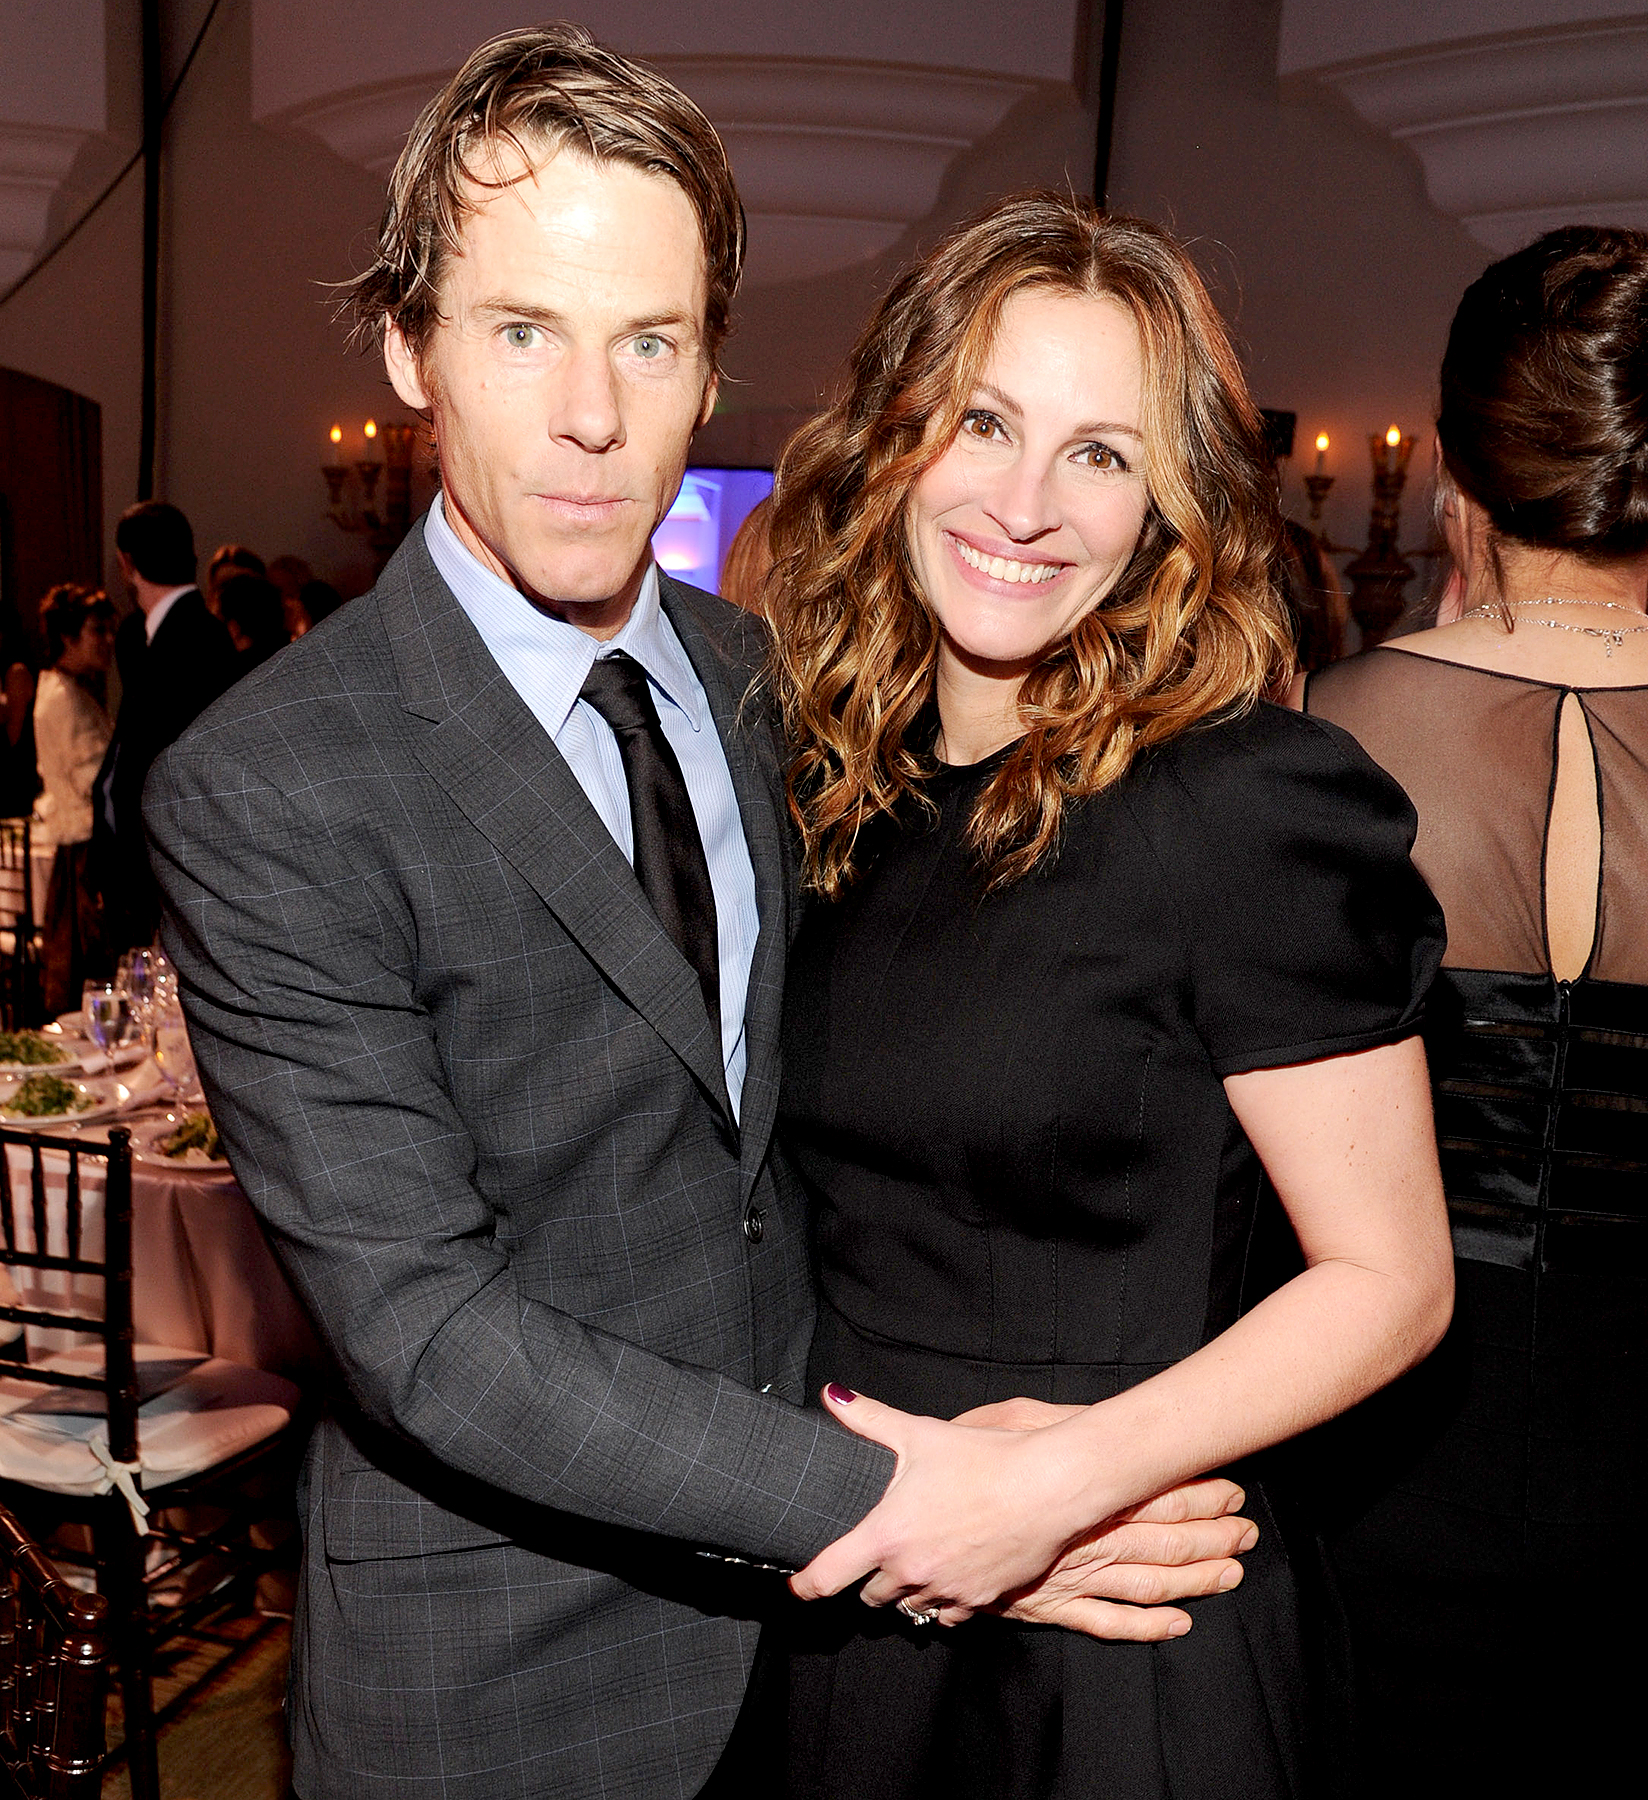 Julia-Roberts-Danny-Moder-divorce-rumors - Danny Moder and Julia Roberts attend the 3rd annual Sean Penn & Friends HELP HAITI HOME Gala benefiting J/P HRO presented by Giorgio Armani at Montage Beverly Hills on January 11, 2014 in Beverly Hills, California.